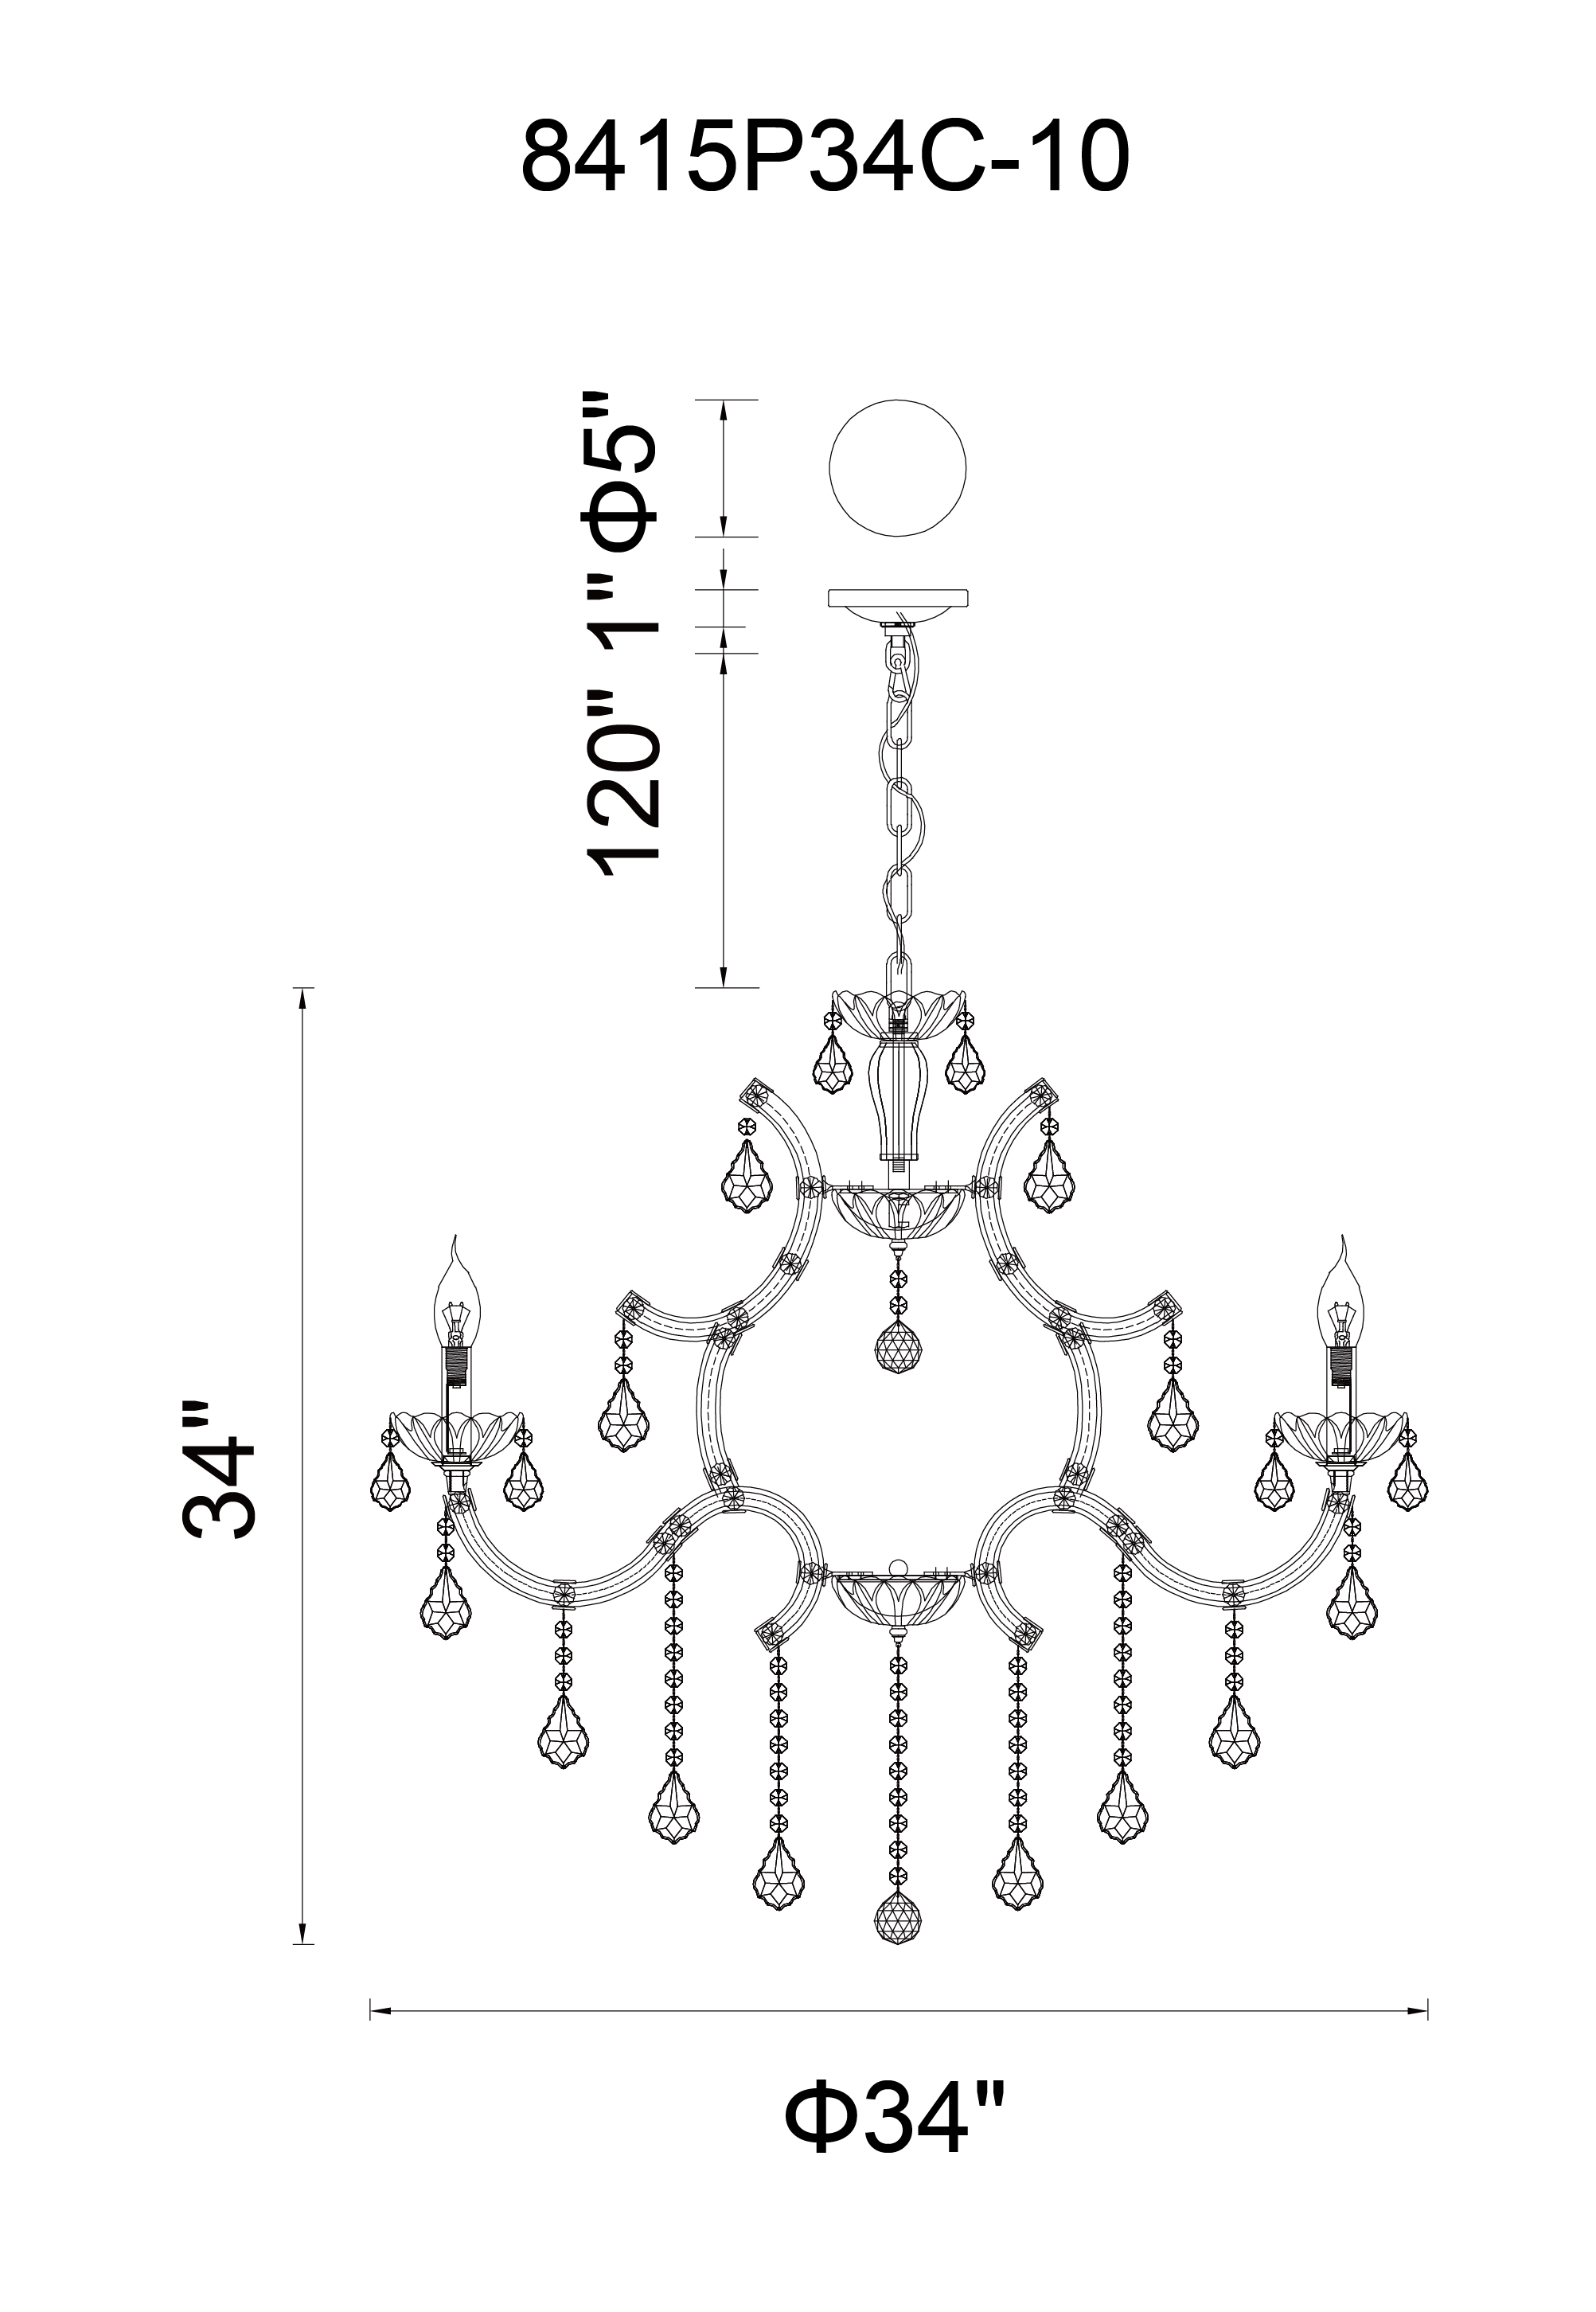 CWI Lighting Dianna 10 Light Up Chandelier With Chrome Finish Model: 8415P34C-10 (SMOKE) Line Drawing